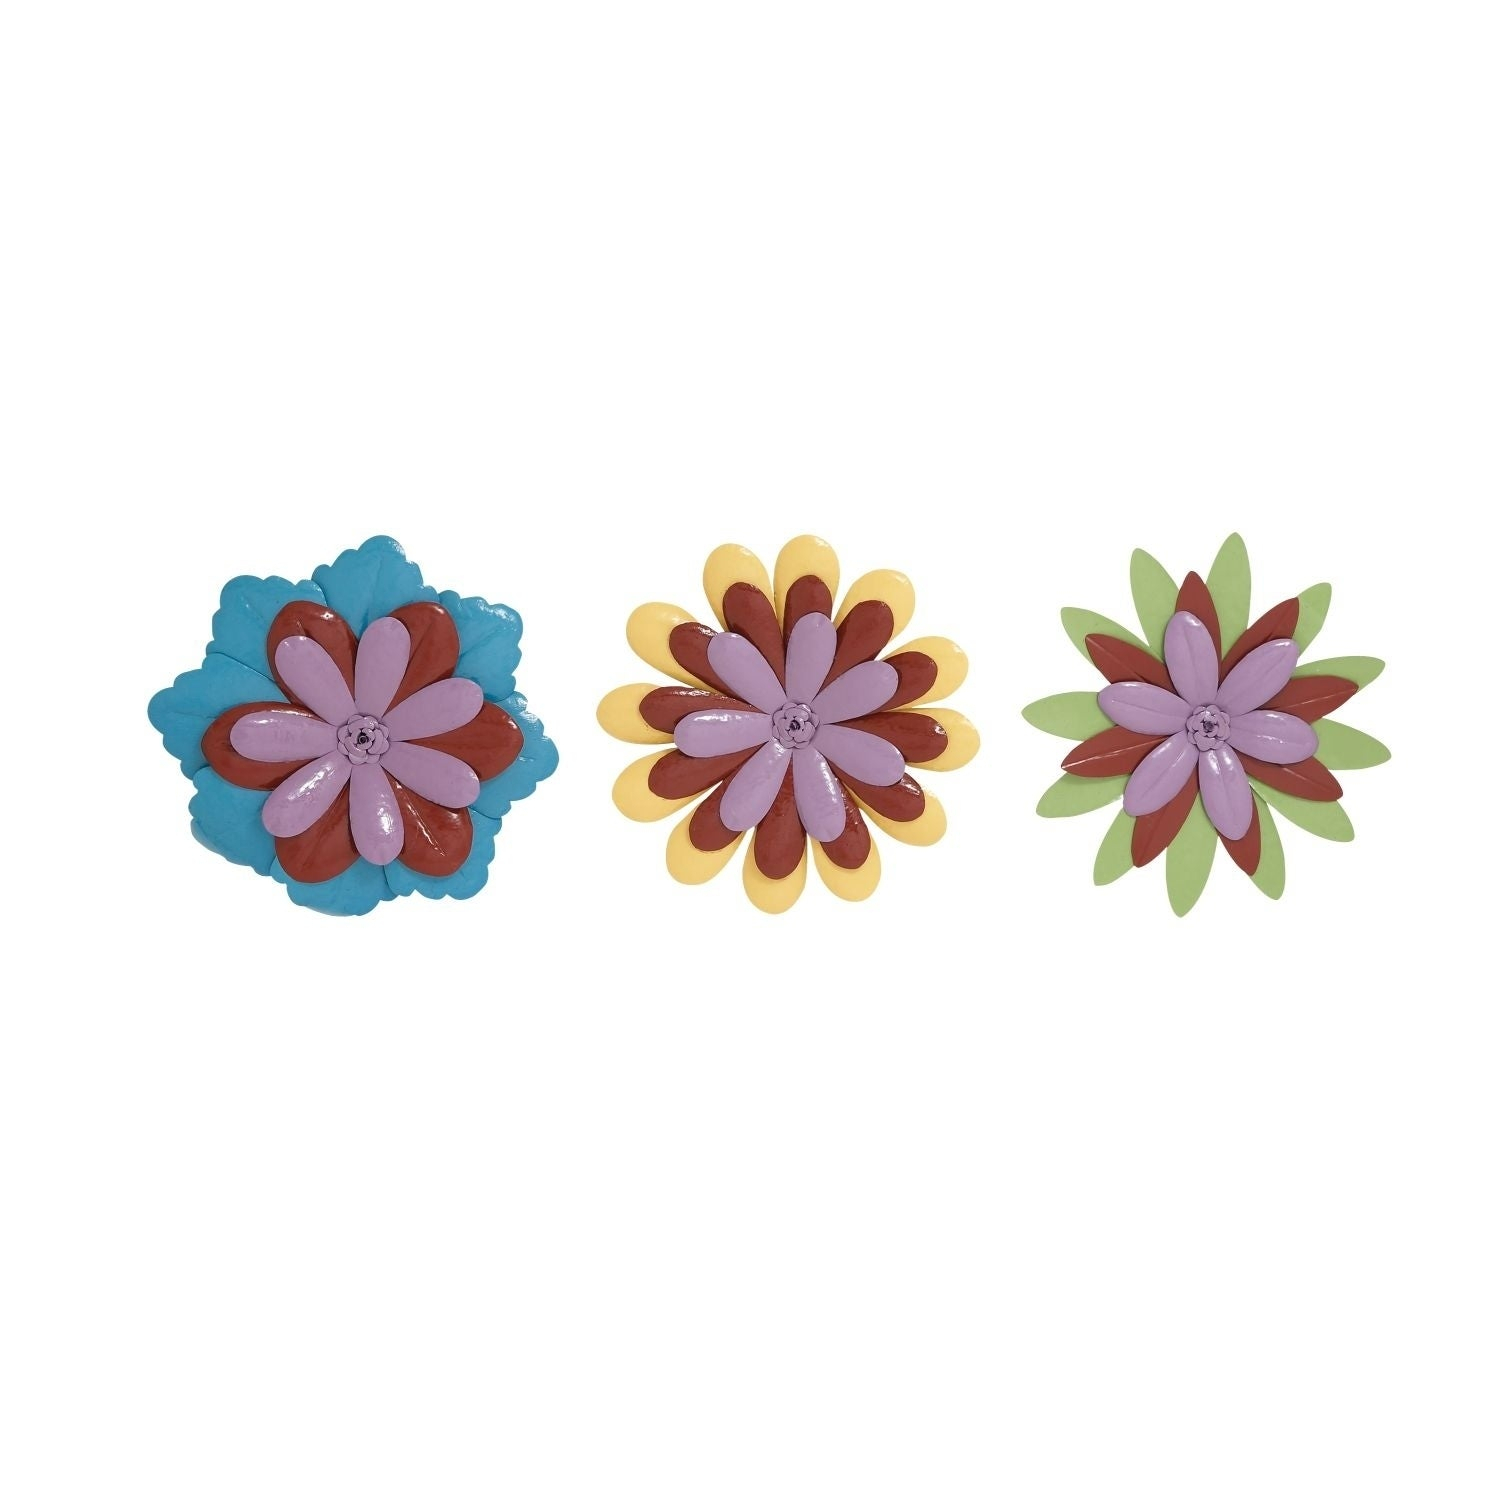 Studio 350 Metal Flower Wall Decor Set Of 3, 18 Inches D Regarding Metal Flower Wall Decor (Set Of 3) (View 15 of 30)